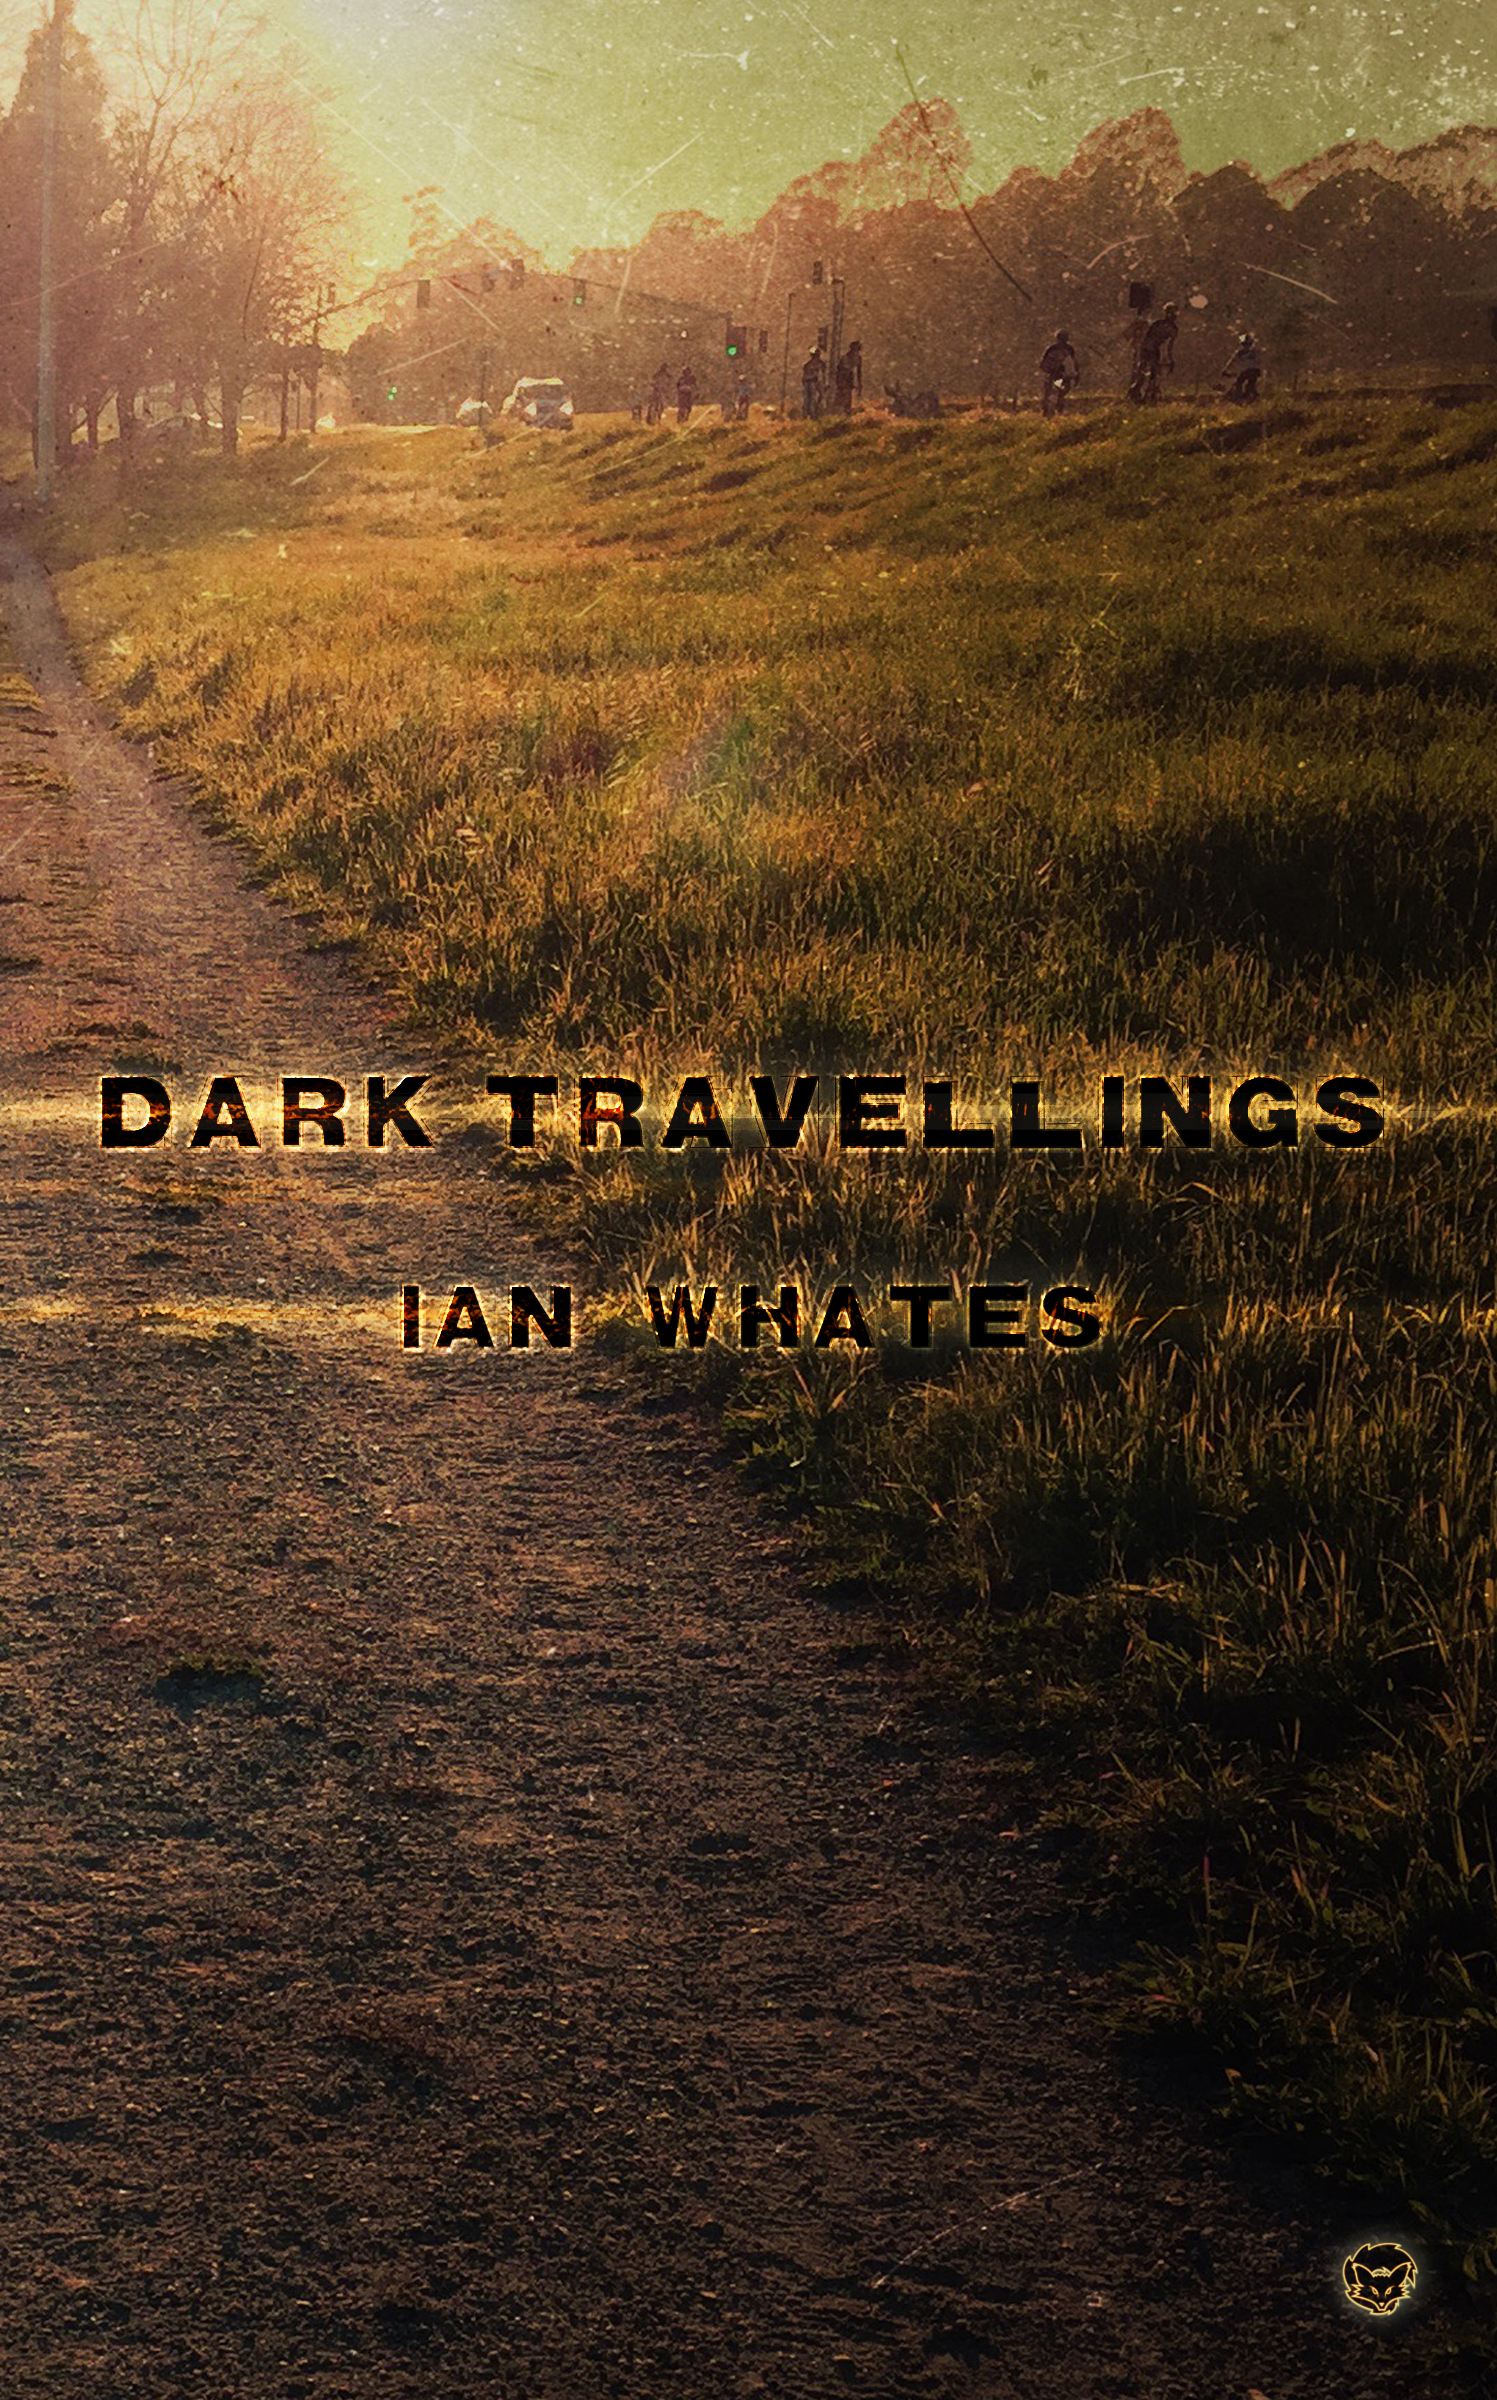 Dark Travellings by Ian Whates